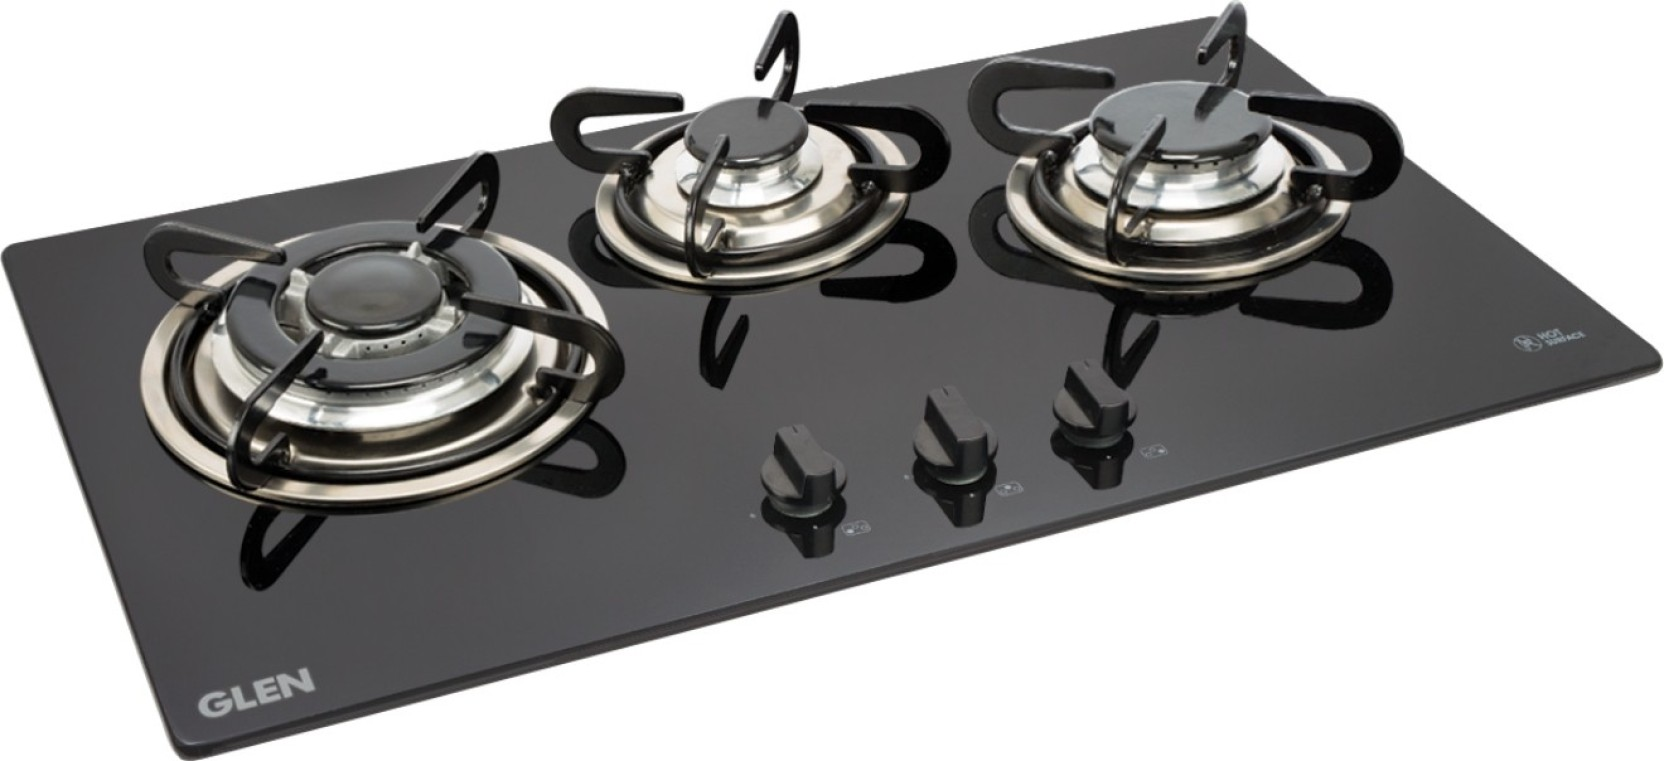 Glen Gl 1073 Tr Built In Hob